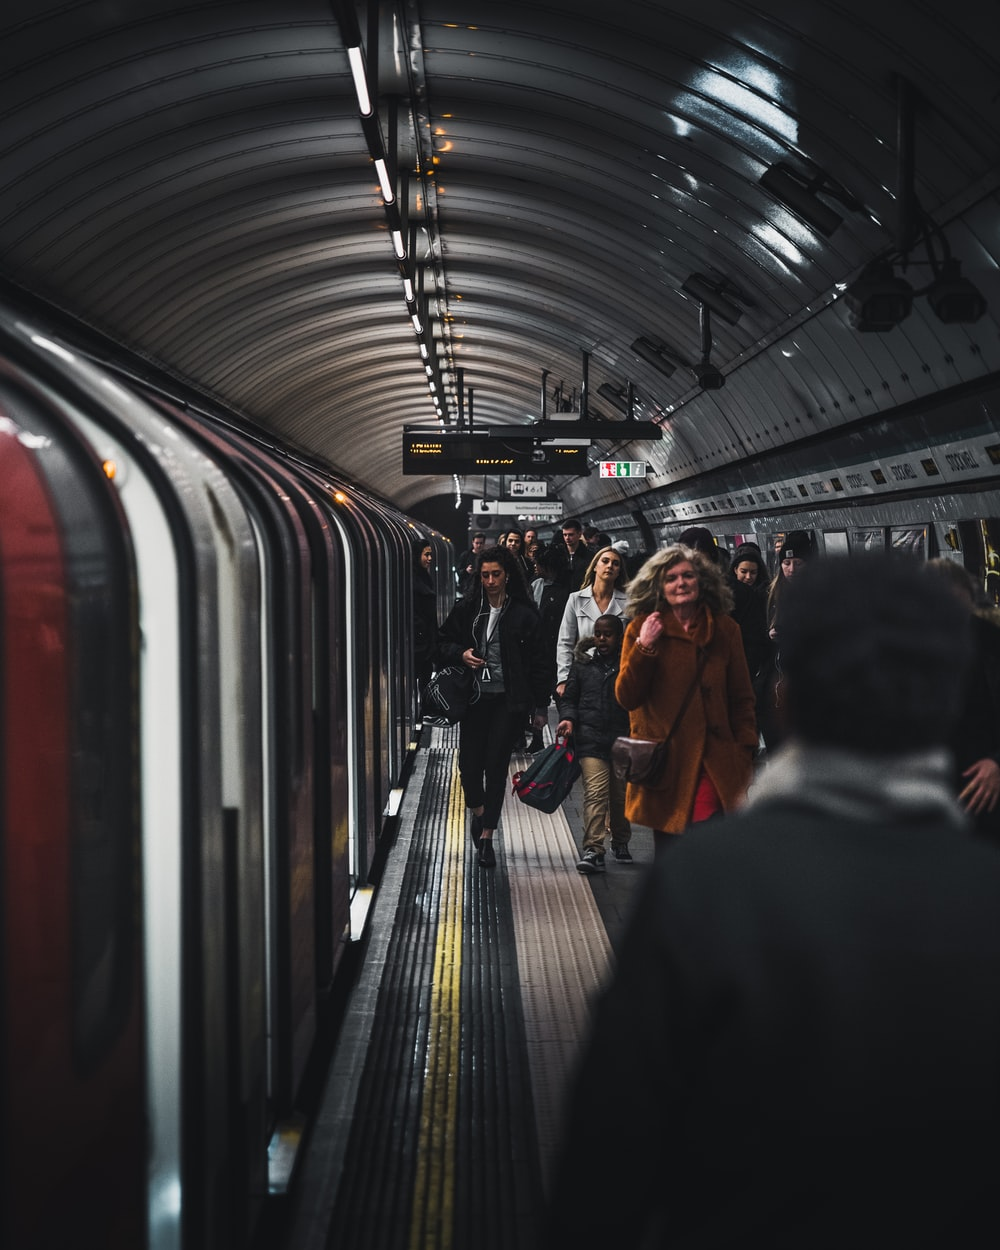 London Underground - People of the city | HD photo by Luke